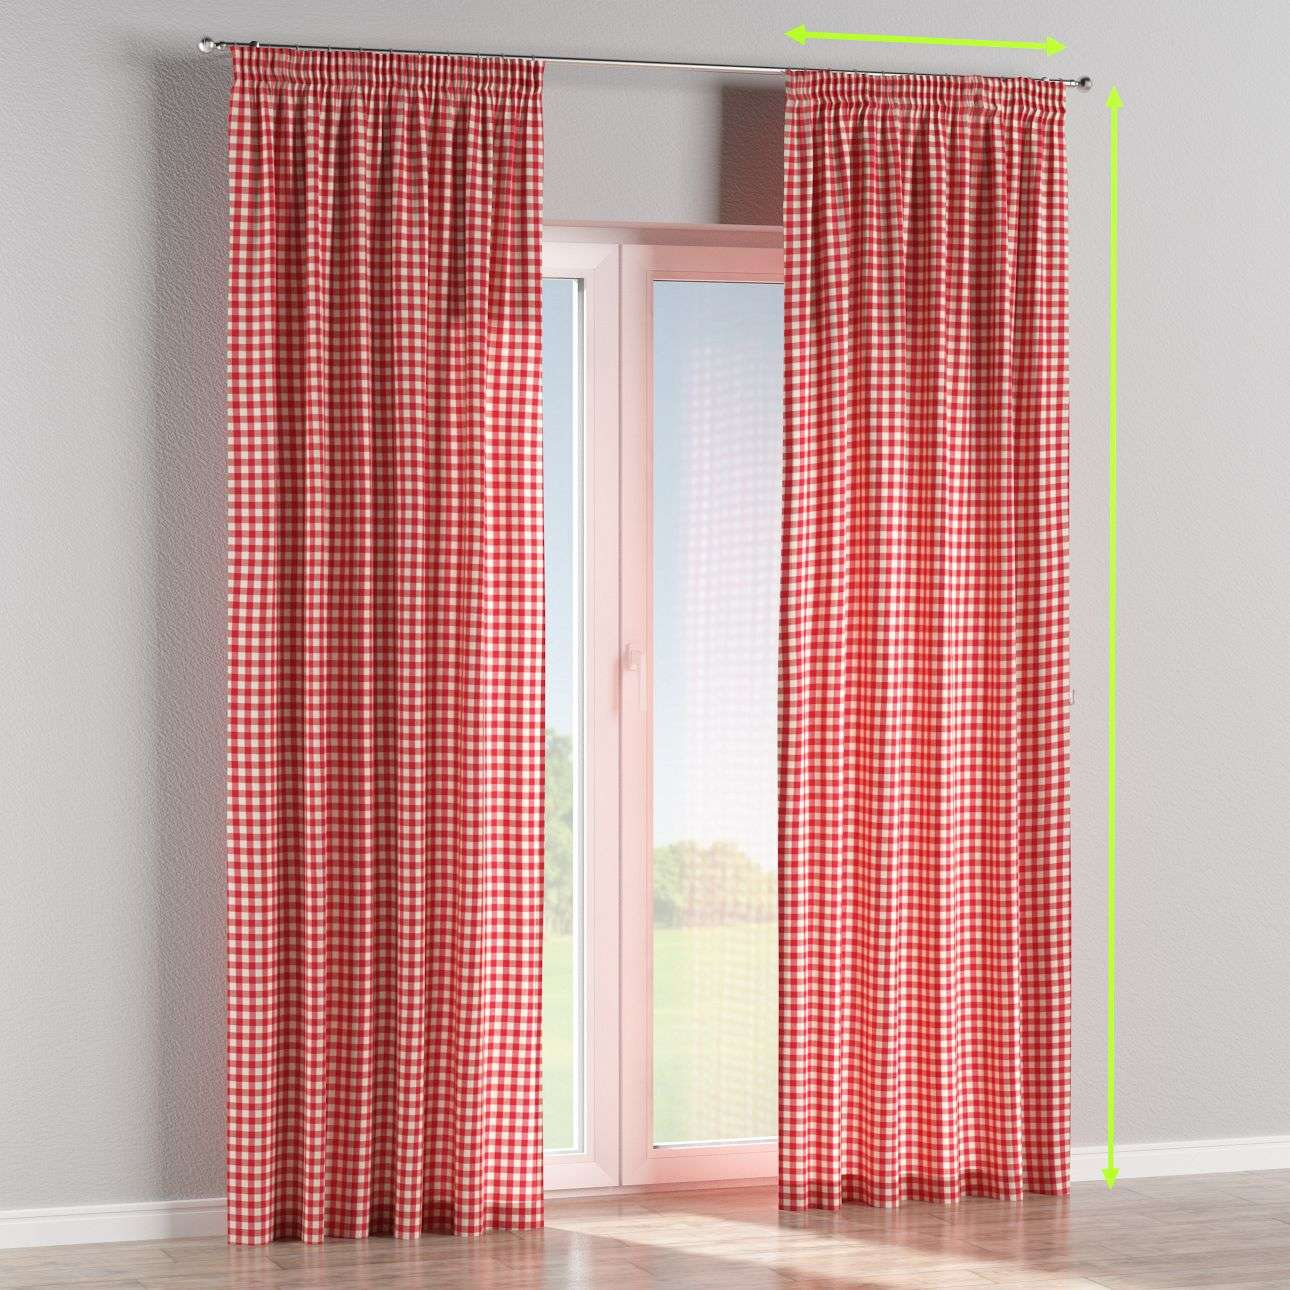 Pencil pleat lined curtains in collection Quadro, fabric: 136-16